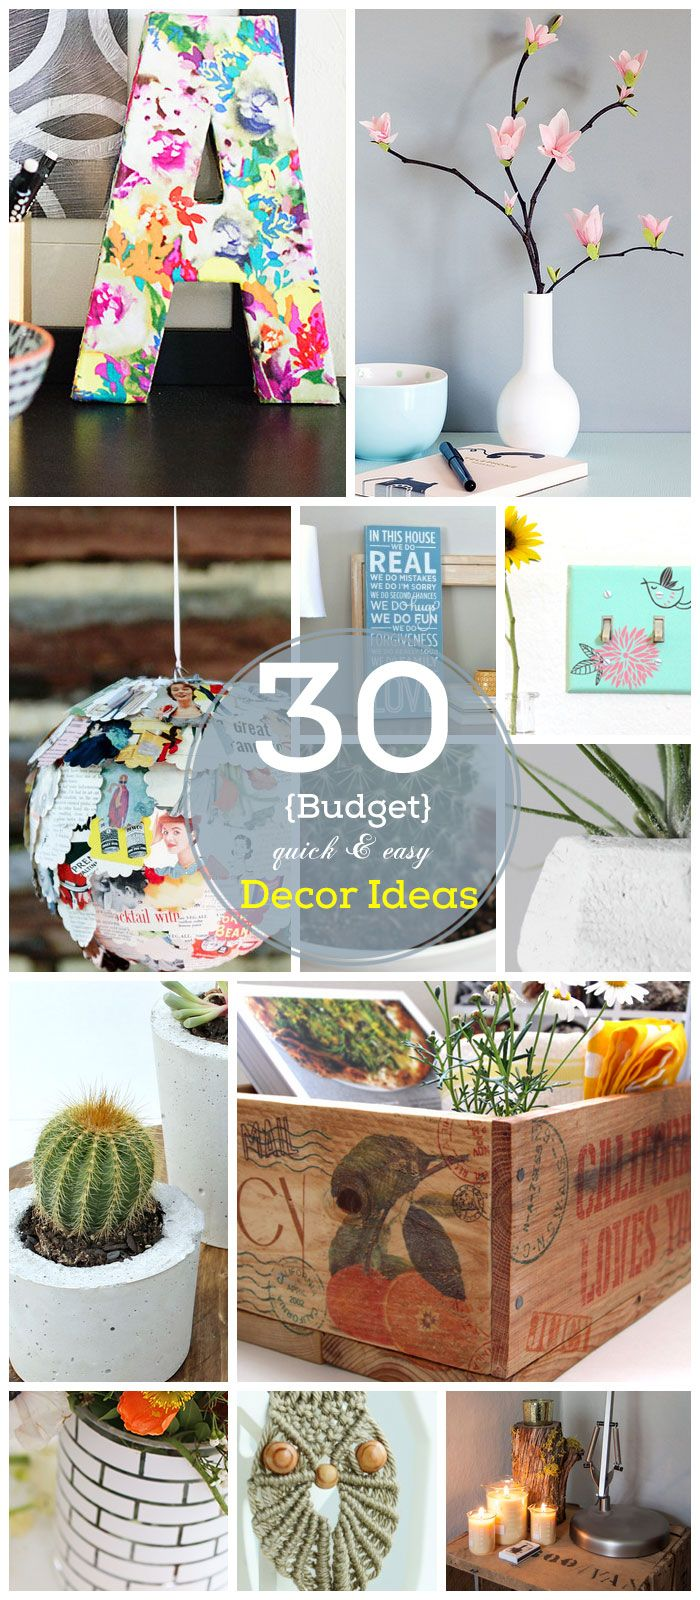 30 diy home decor ideas on a budget for Home interior design ideas on a budget